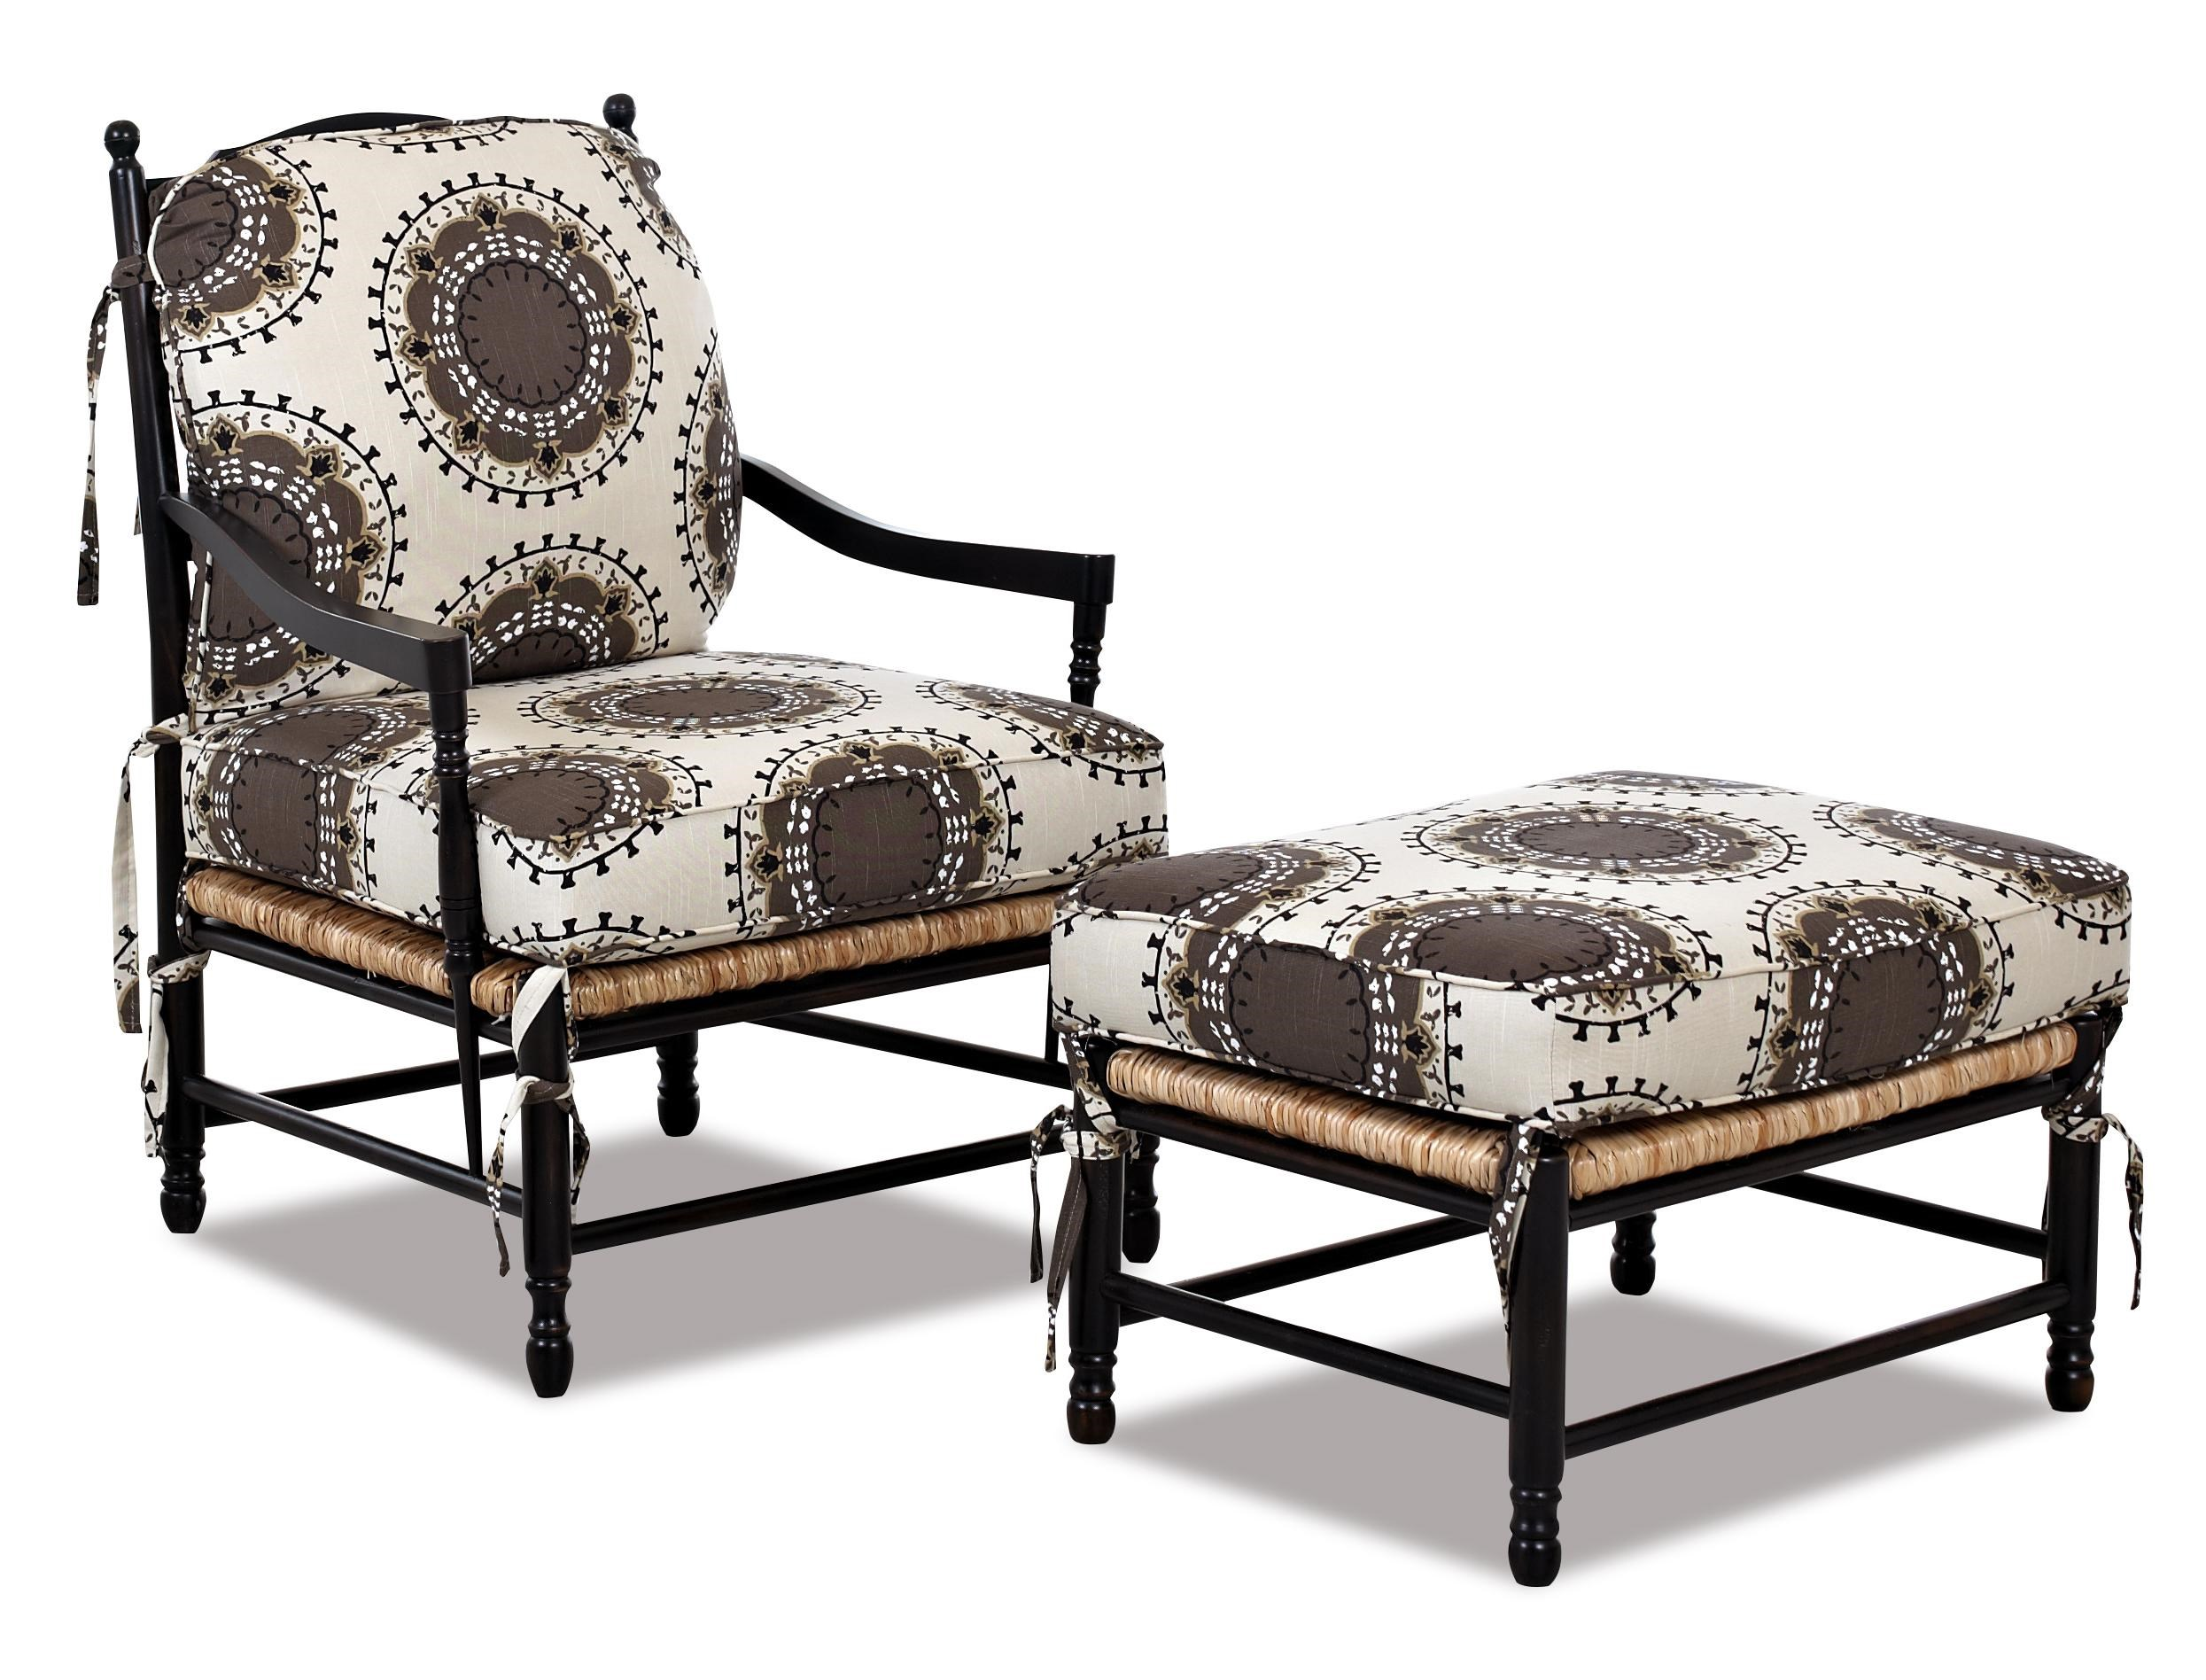 Klaussner Chairs And AccentsVerano Occasional Chair And Ottoman Set ...